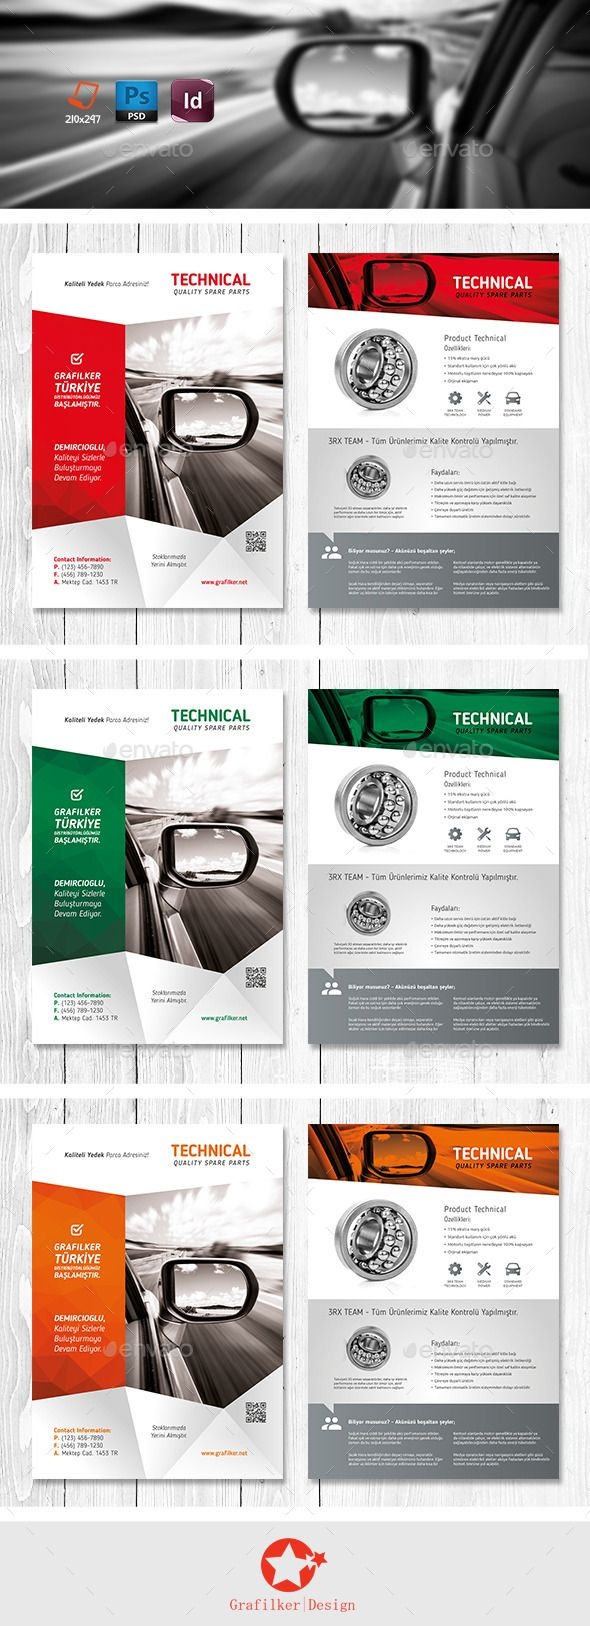 Technical Data Product Flyer Templates #design Download: http://graphicriver.net/item/technical-data-product-flyer-templates/11220281?ref=ksioks